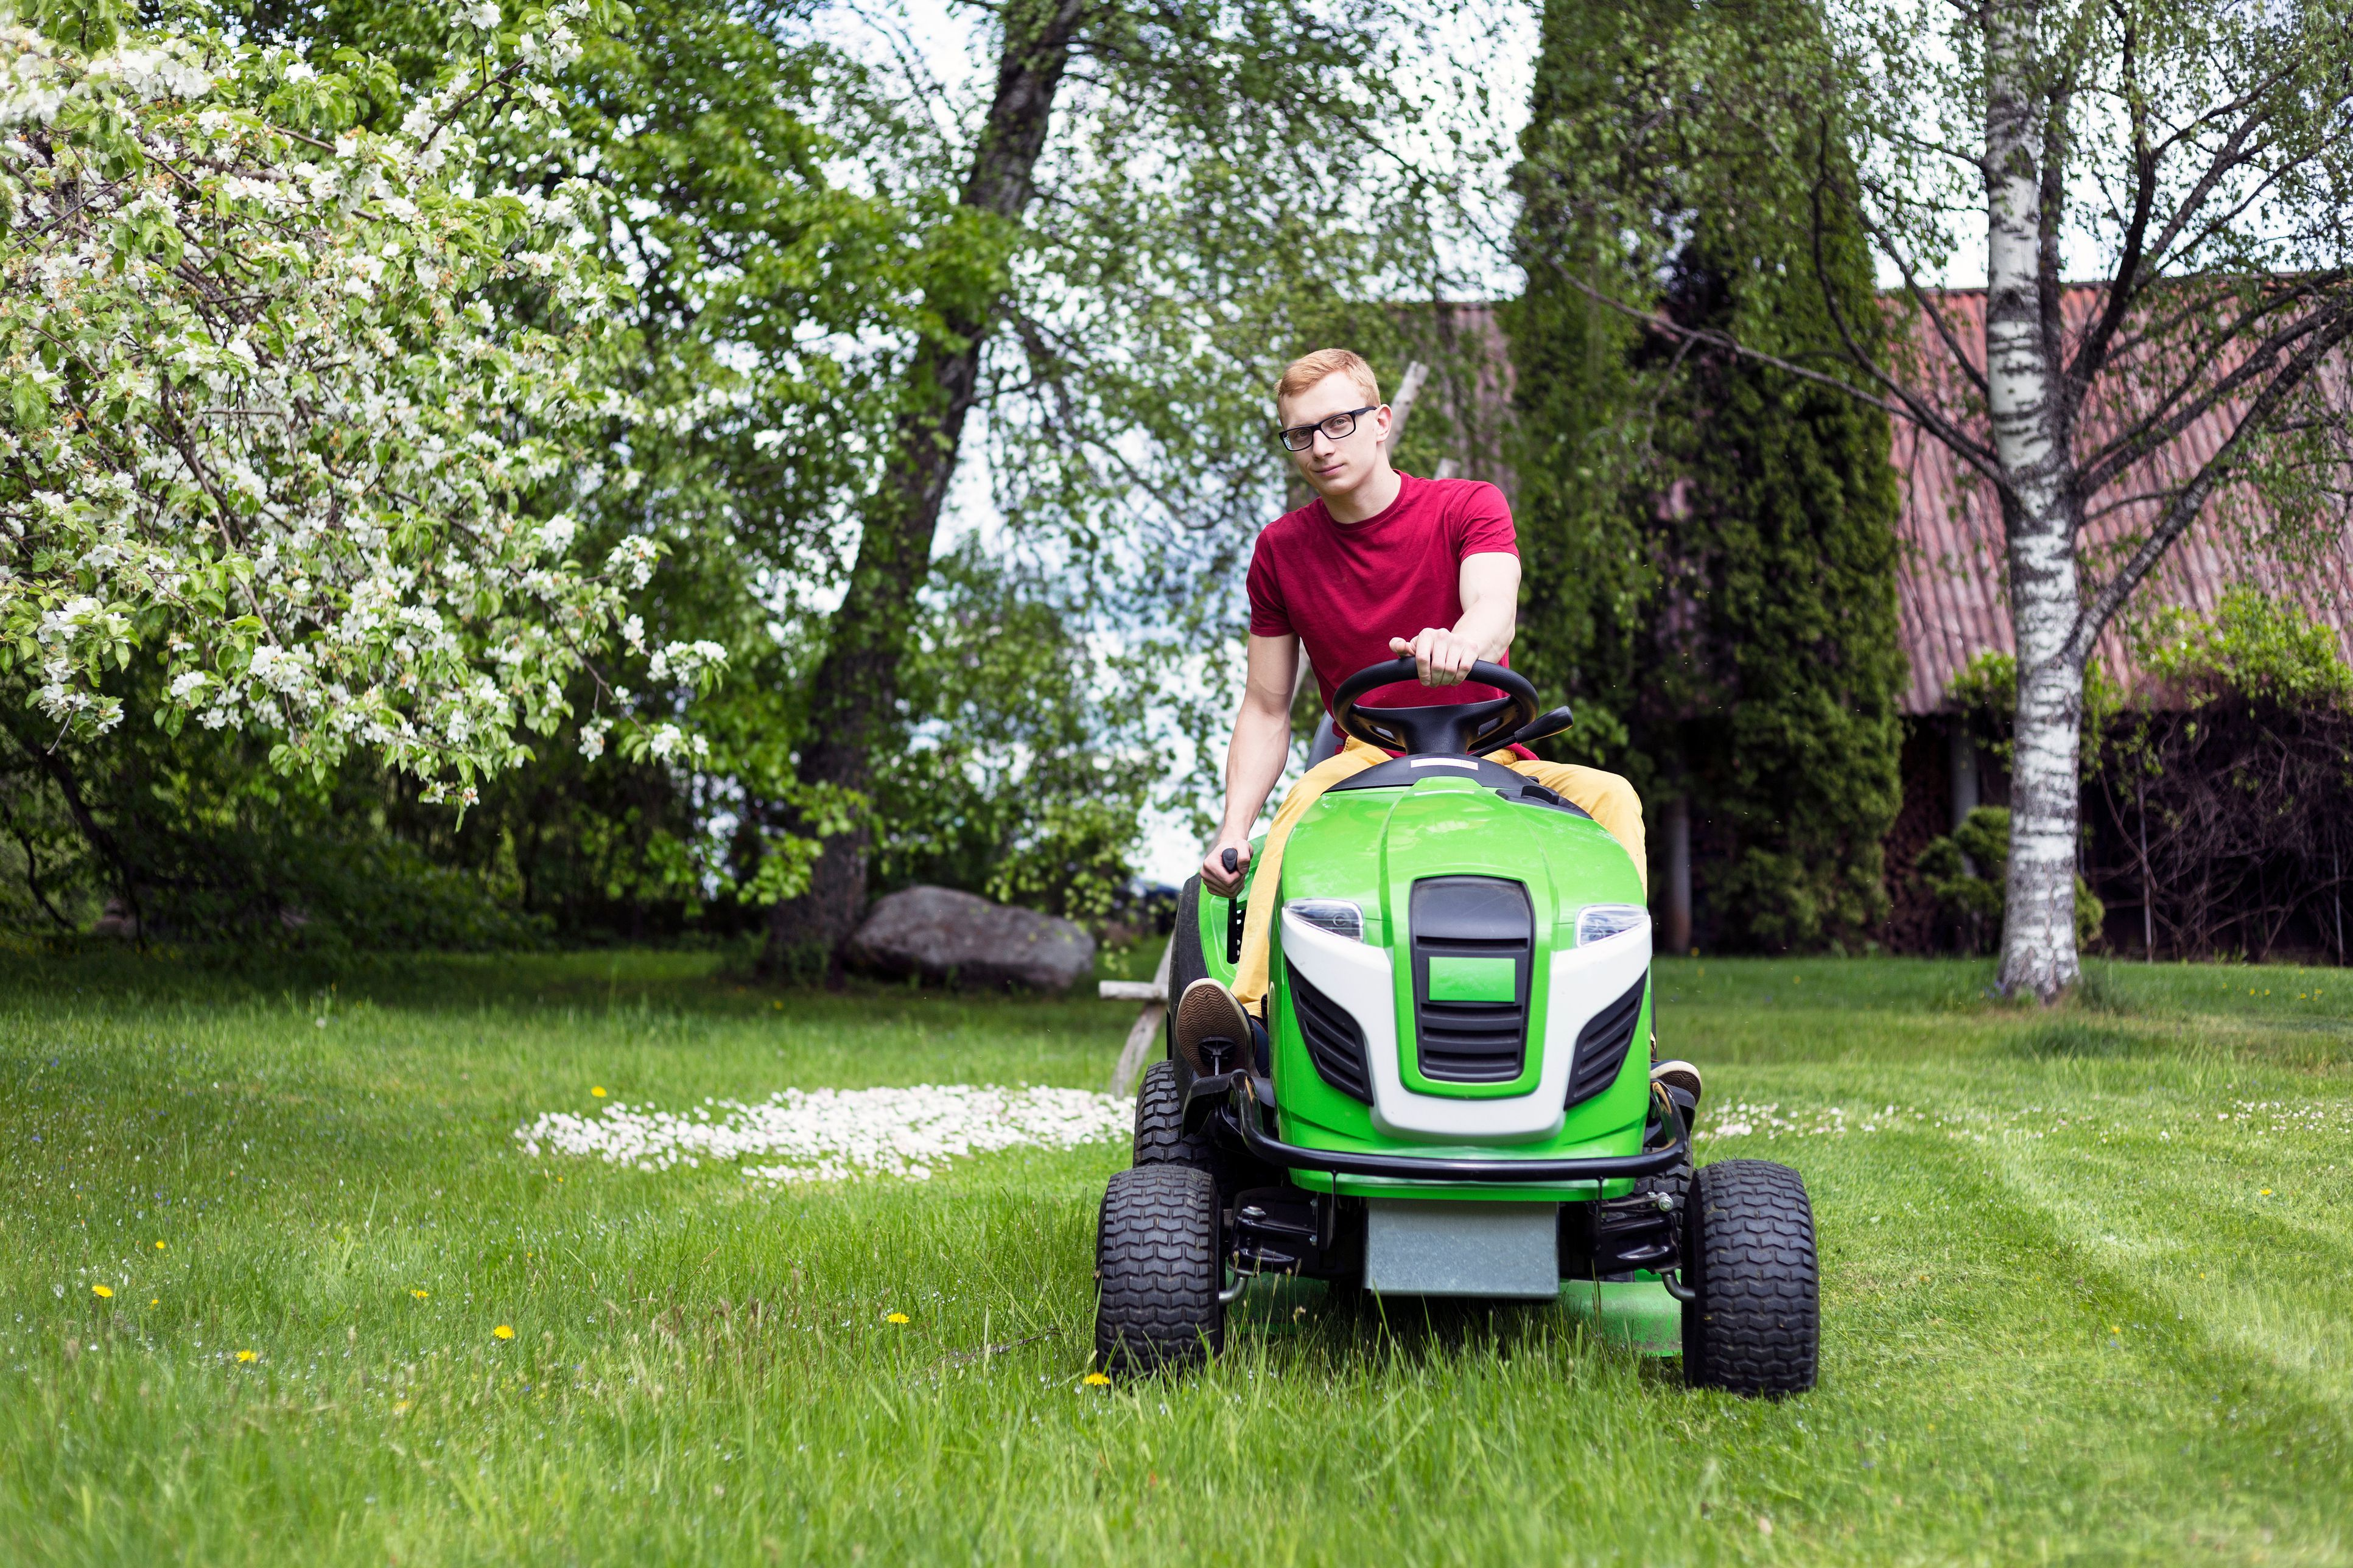 The 8 Best Riding Lawn Mowers Of 2020 Best Riding Lawn Mower Riding Lawn Mowers Best Lawn Tractor